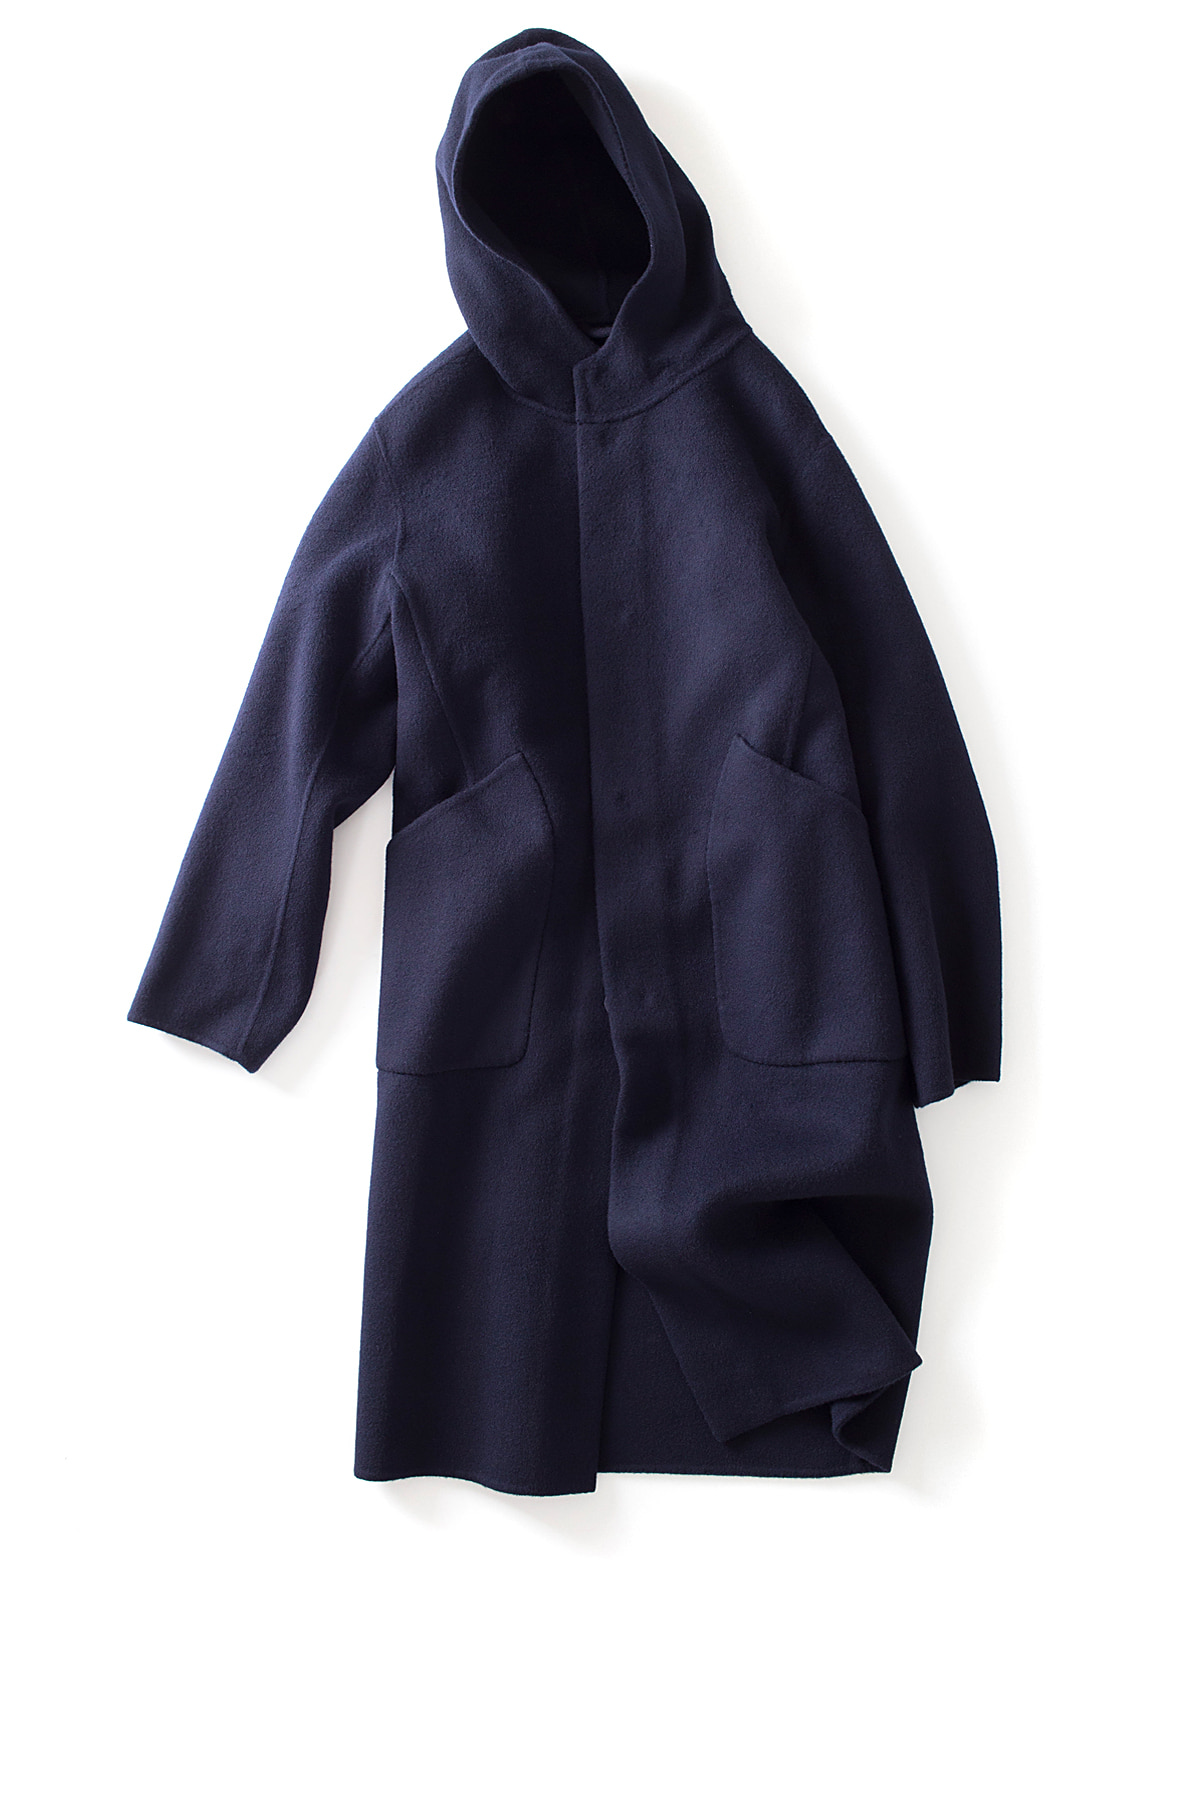 Document : Hand Made Hooded Coats (Navy)